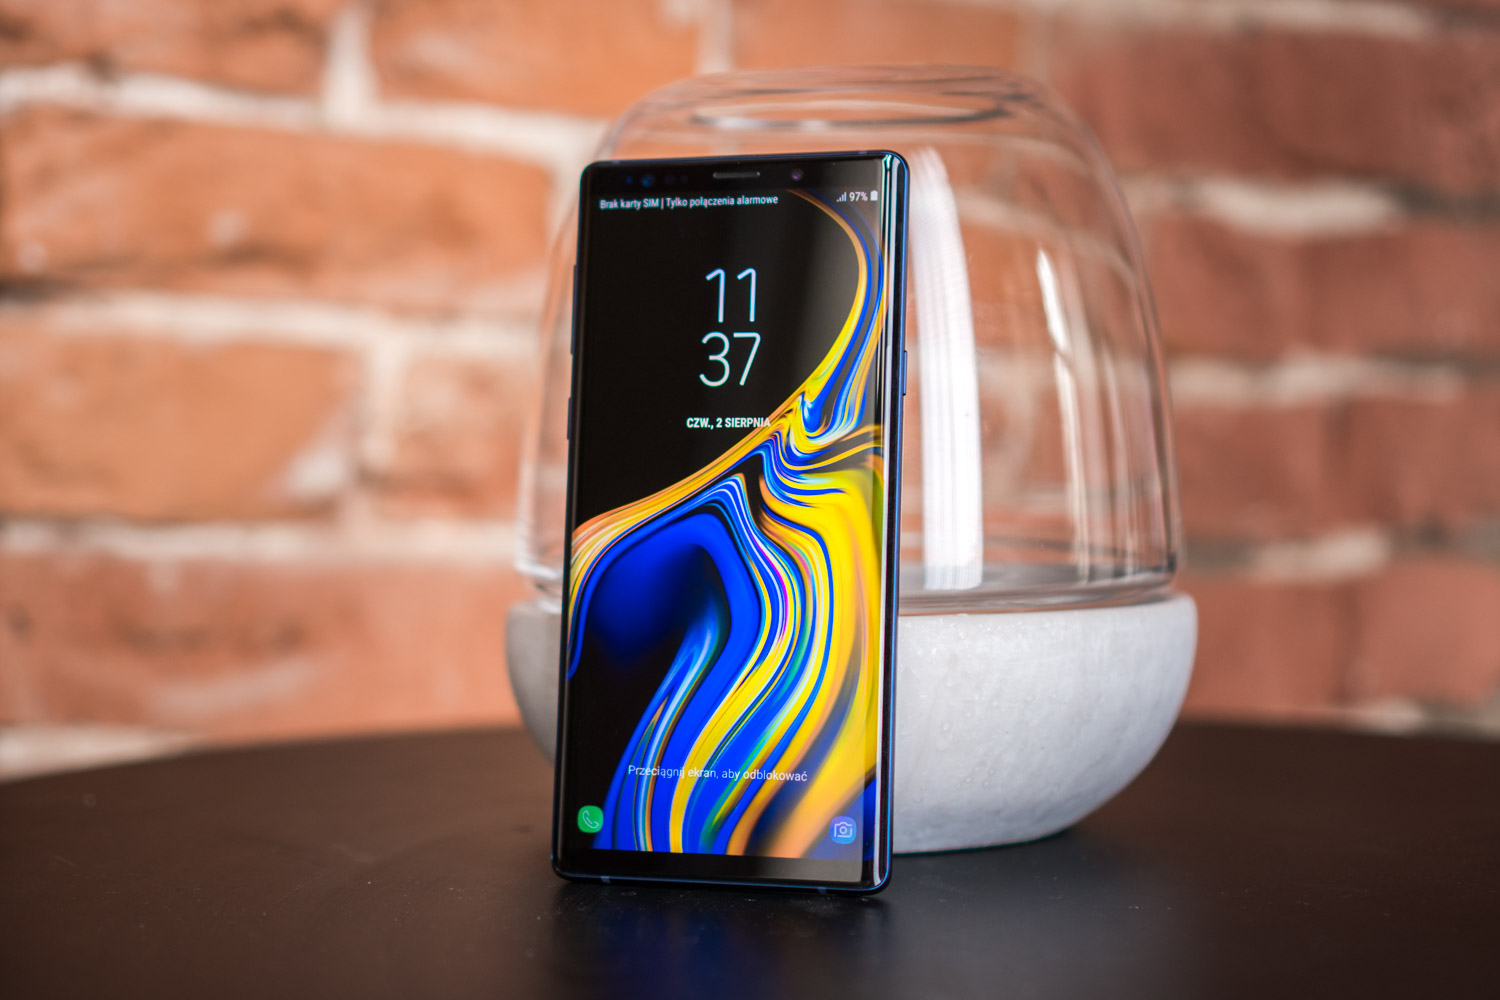 samsung galaxy s9 s9 plus note9 sgs9 sgs9 plus play plus t-mobile orange abonament cena gdzie kupic 6